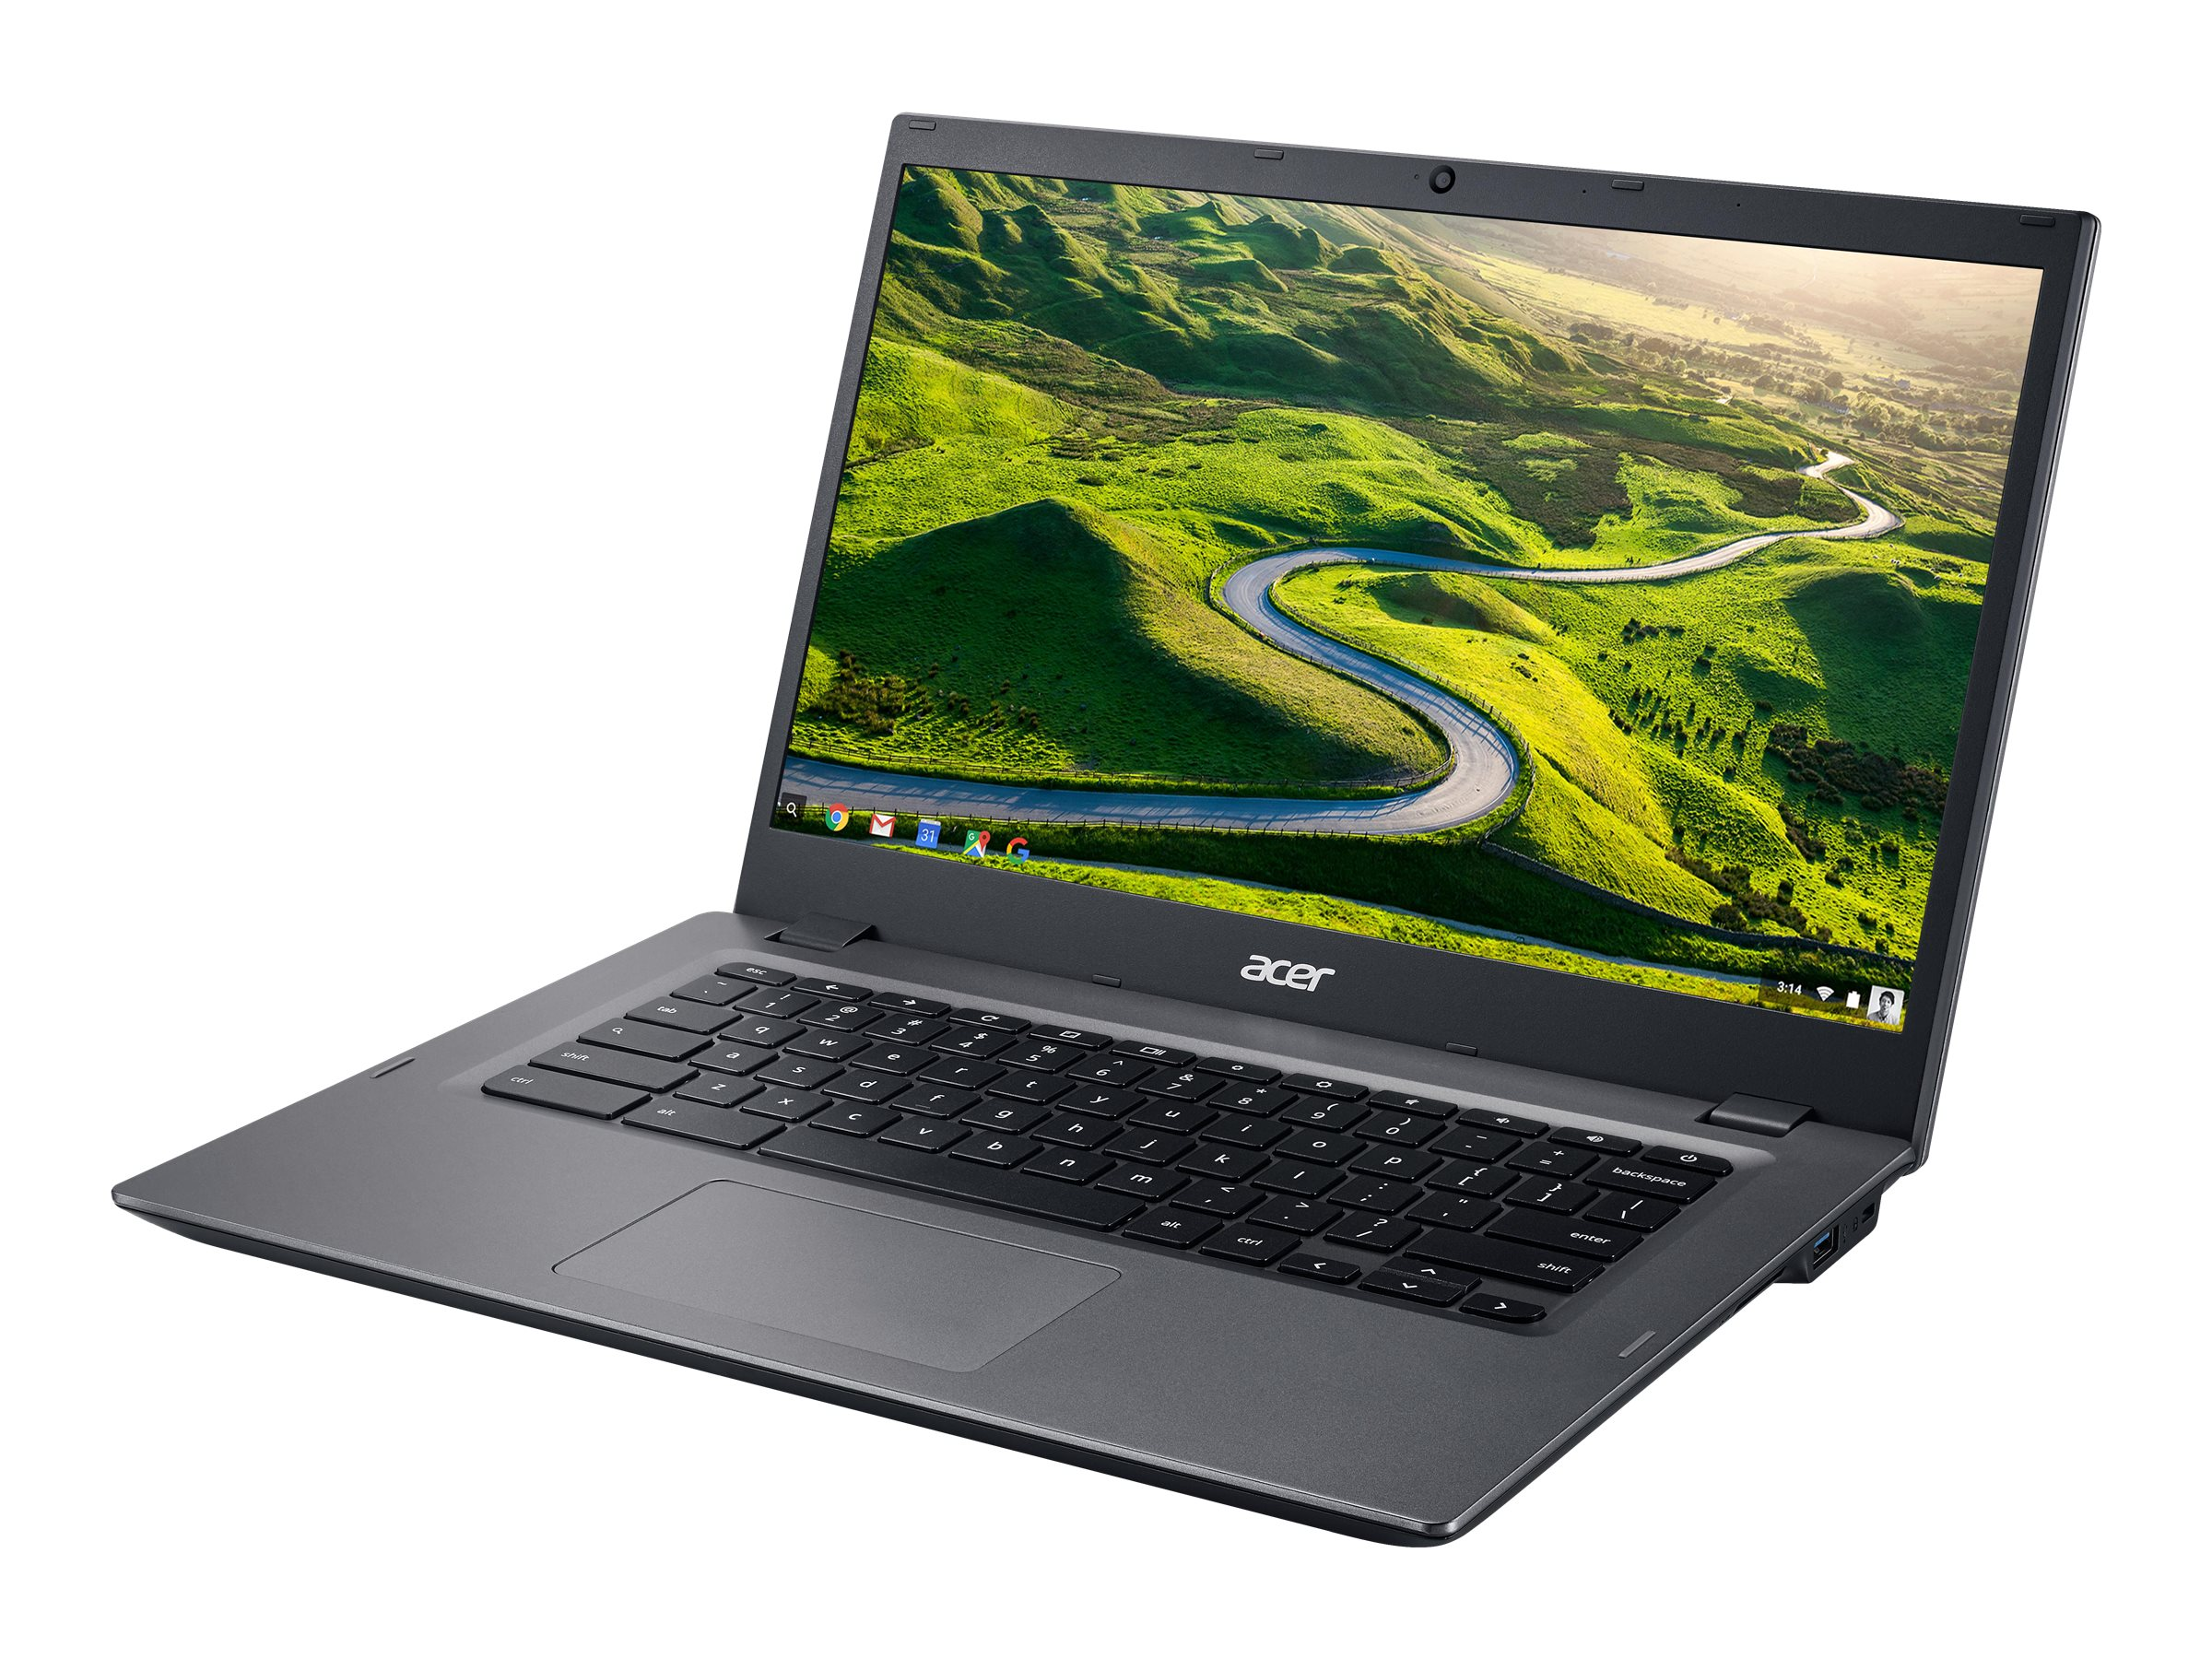 Acer Chromebook 14 CP5-471-581N 2.3GHz Core i5 14in display